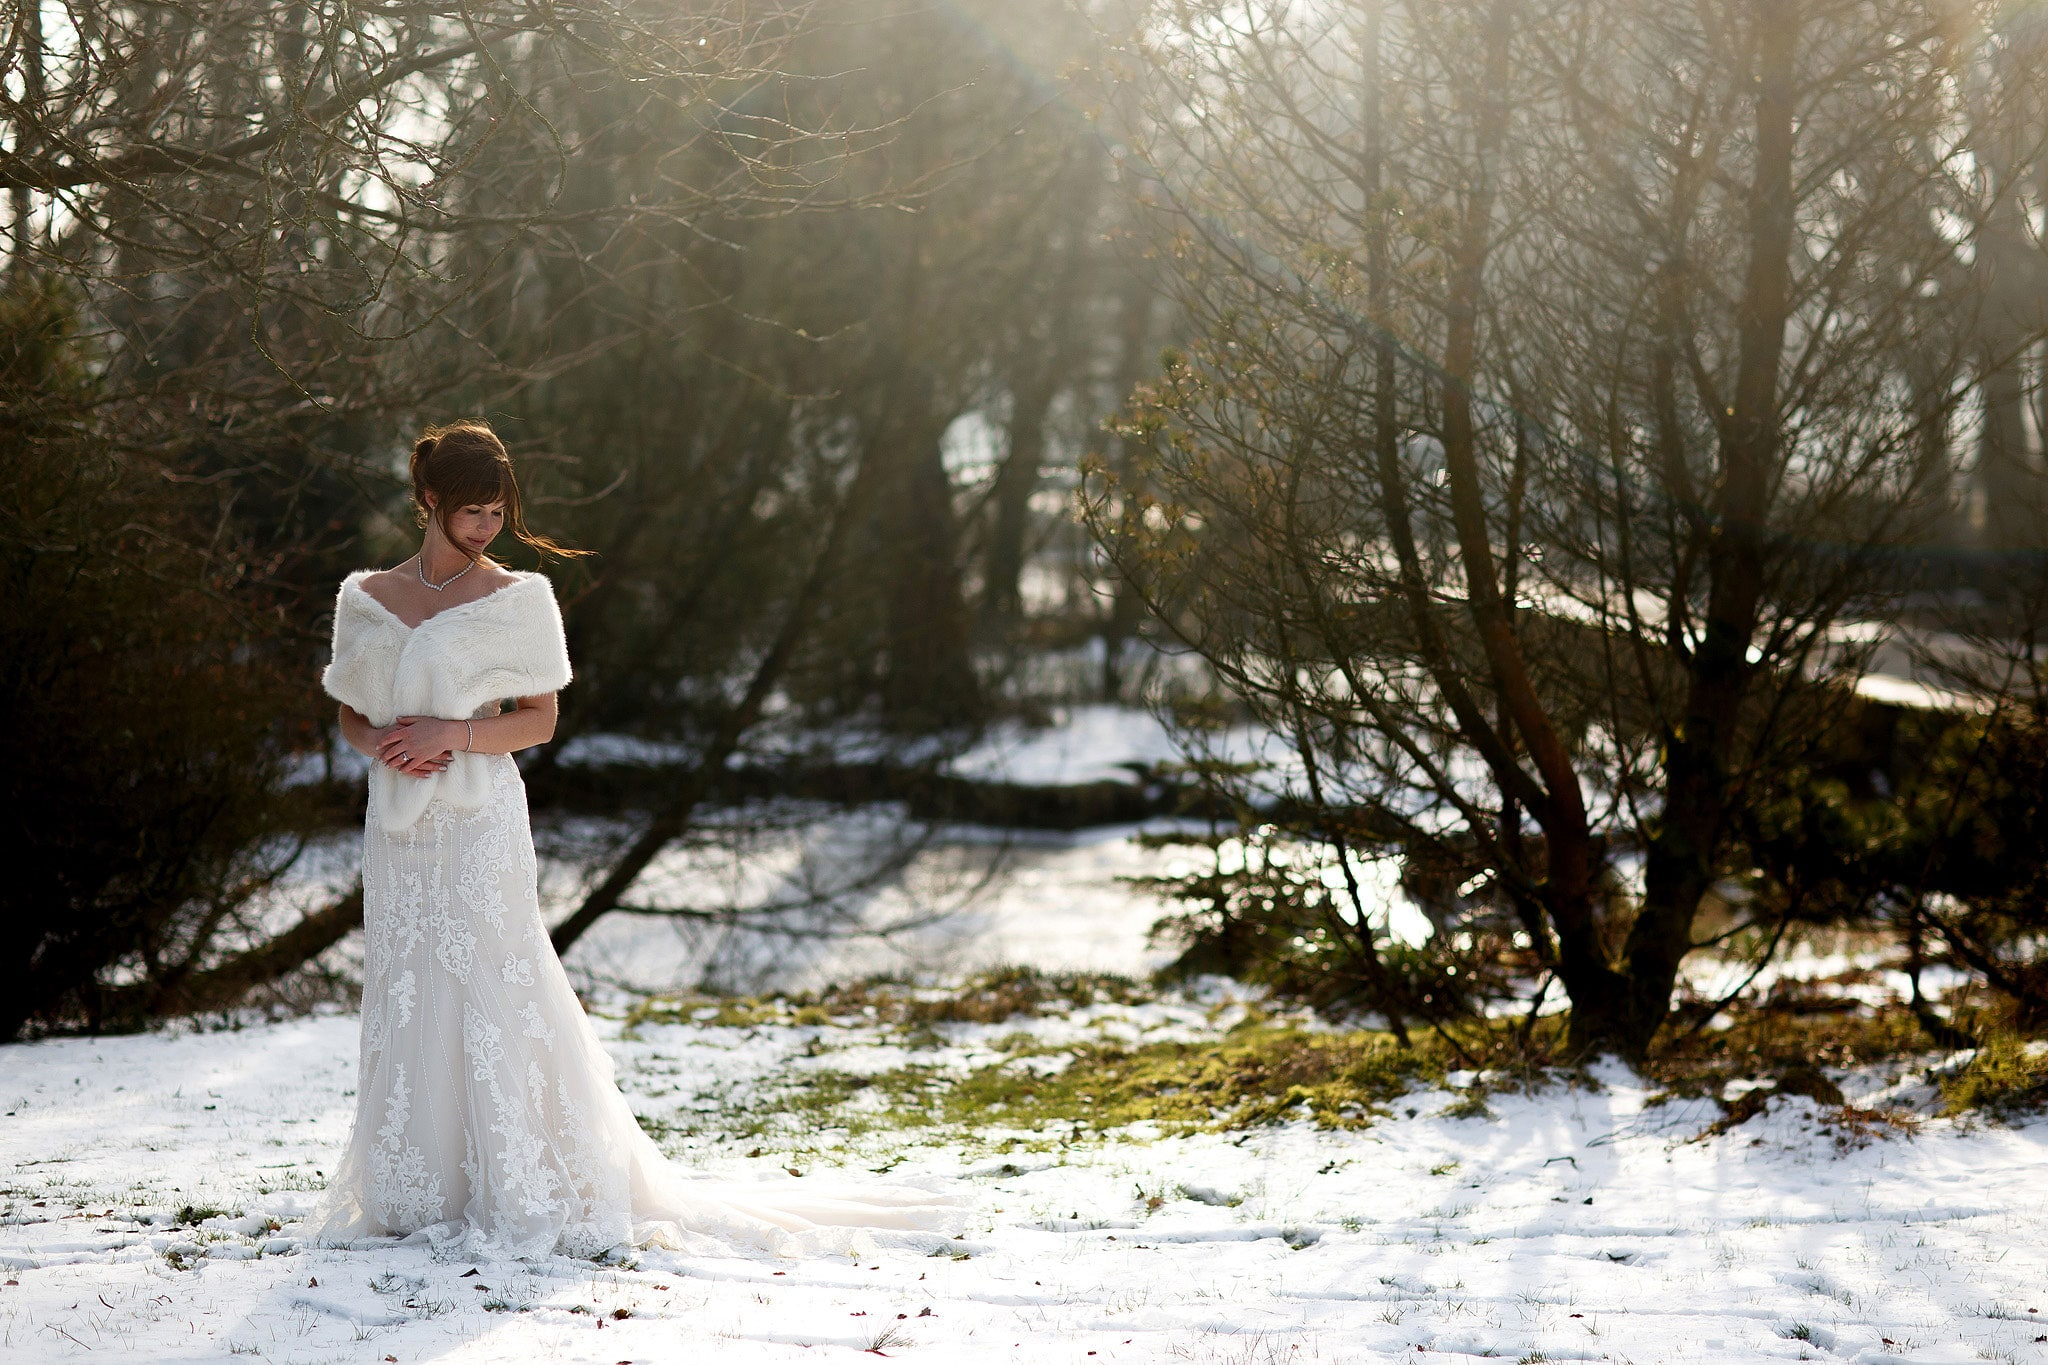 Bridal wearing strapless lace wedding dress and fur shrug looking to the snowy ground during winter wedding at Rivington Hall Barn